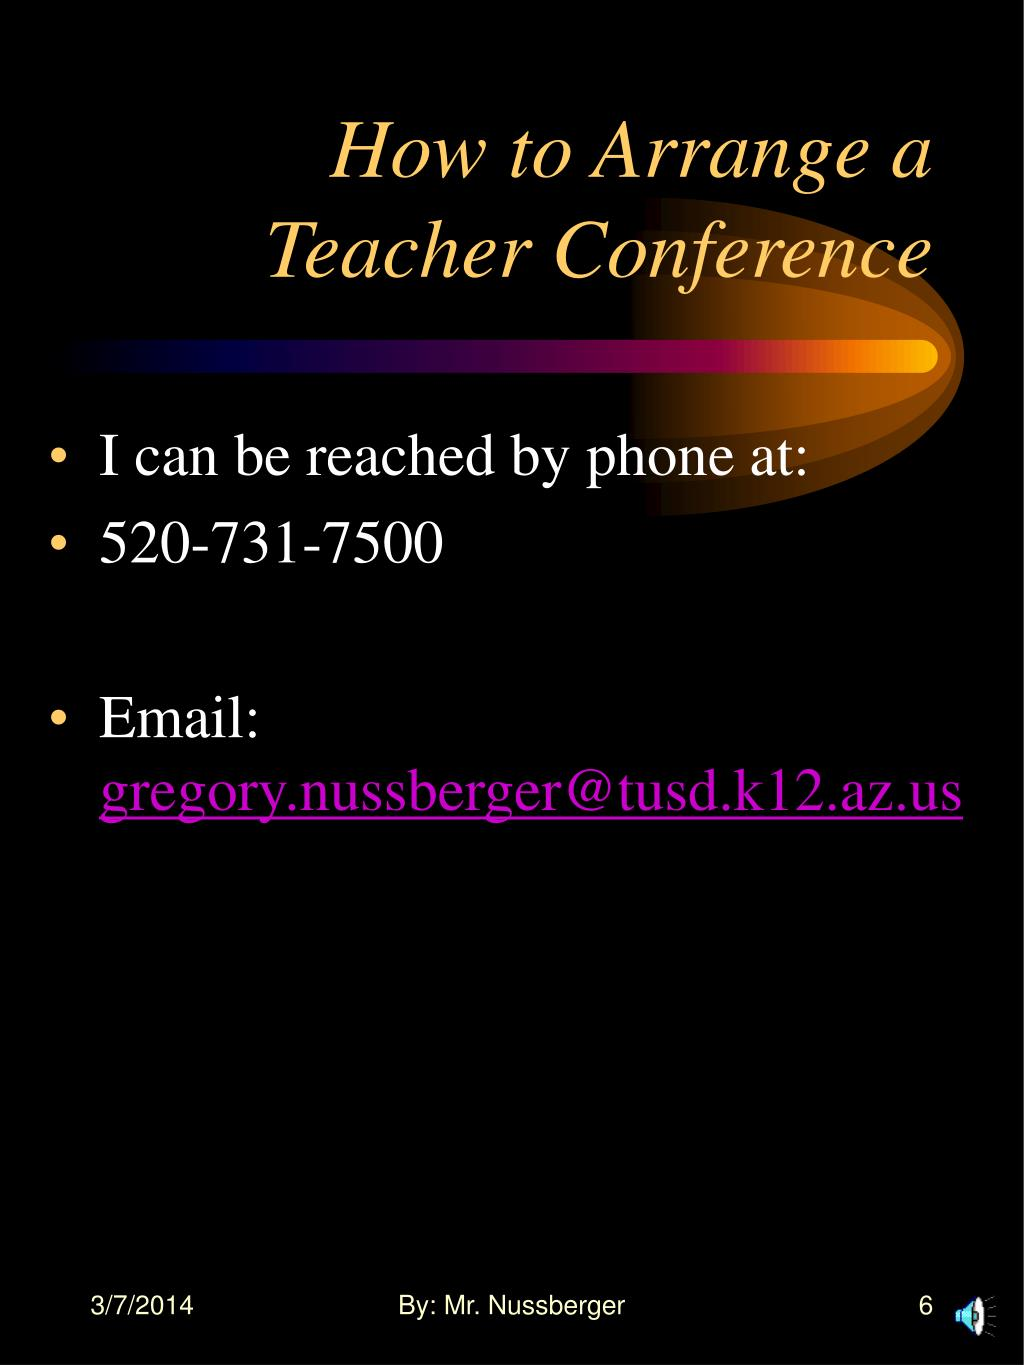 How to Arrange a Teacher Conference